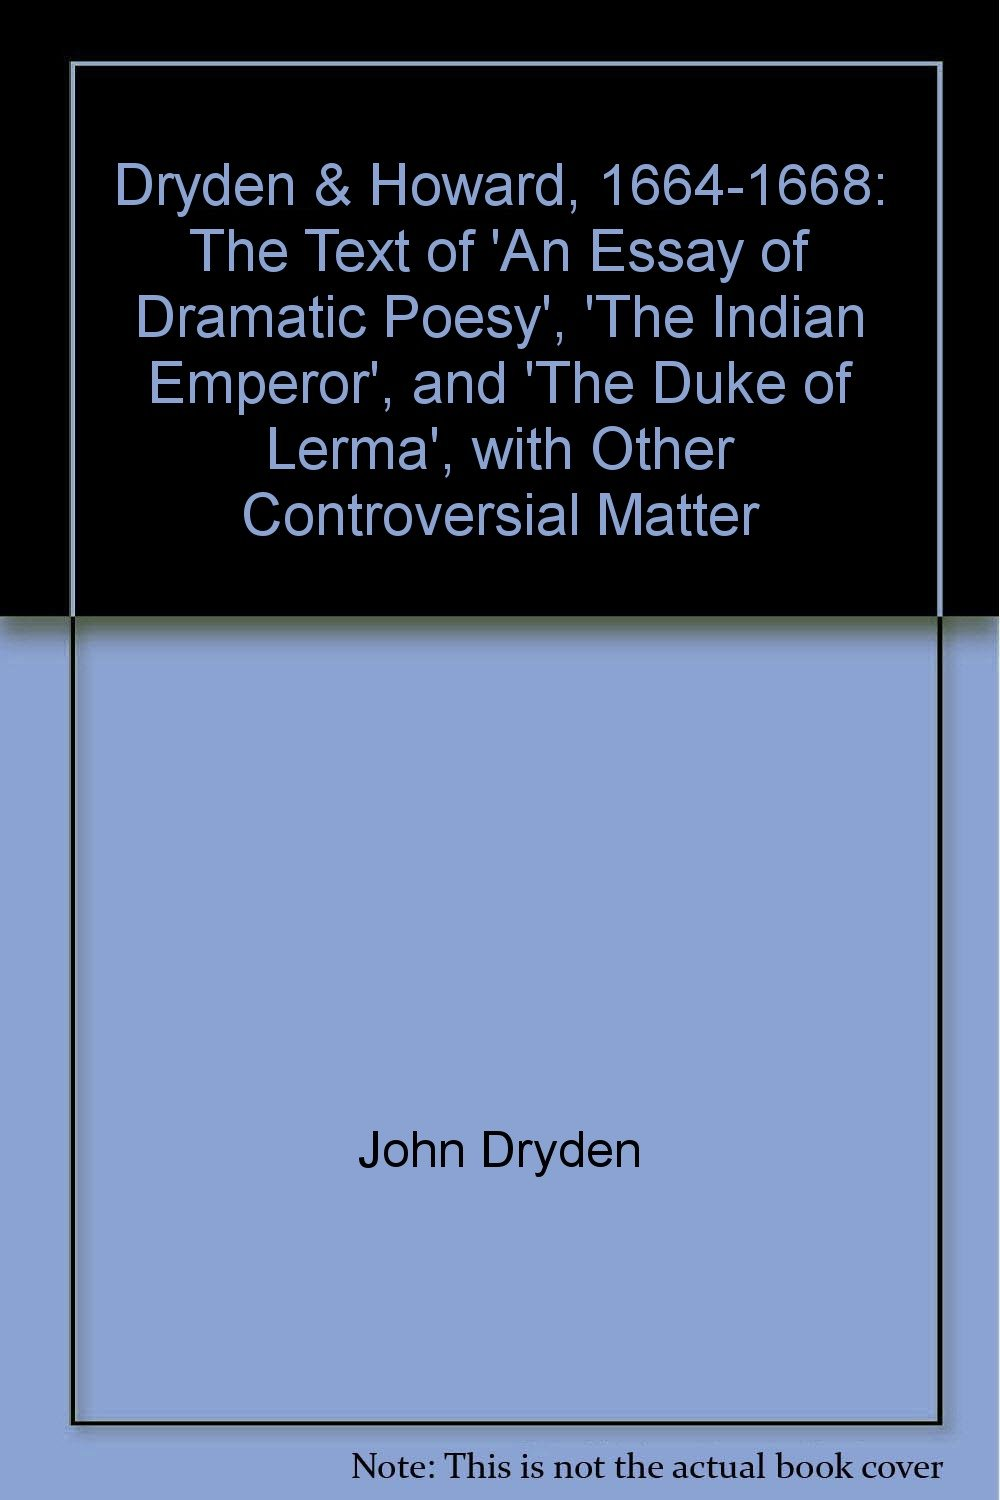 an essay of dramatic poesy wiki The essay is a discourse between 4 speakers including an essay of dramatic poesy by john dryden | poetry foundationthough he died in 1700.